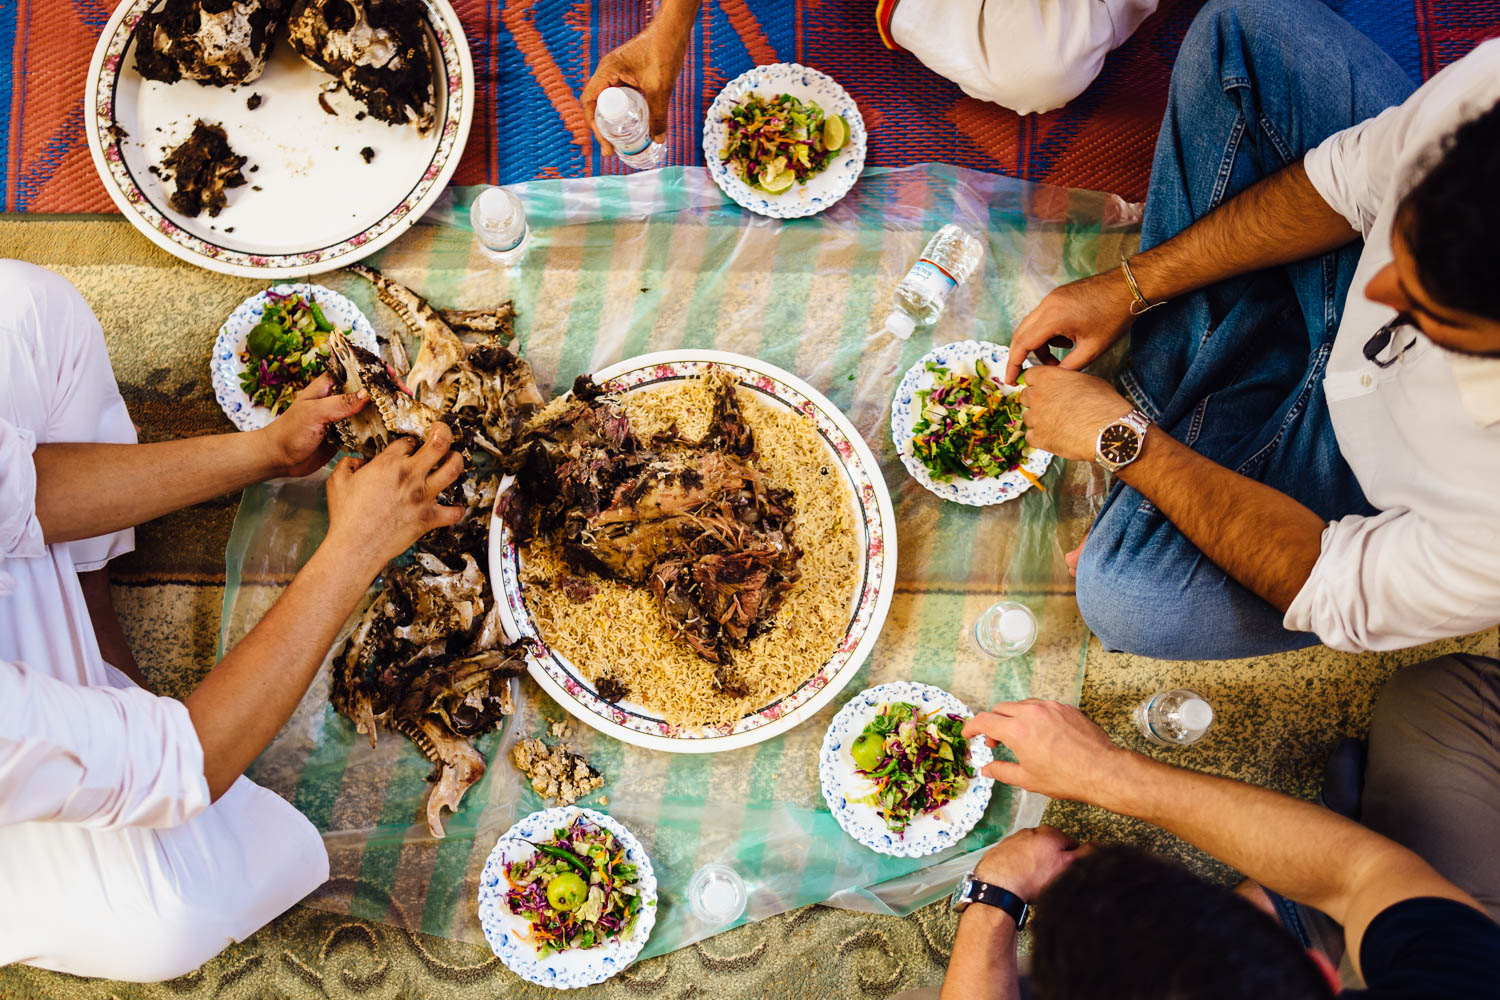 Meal-Feast-Goat-Food-Tradition-Village-Oman-Daniel-Durazo-Photography-Durazophotography